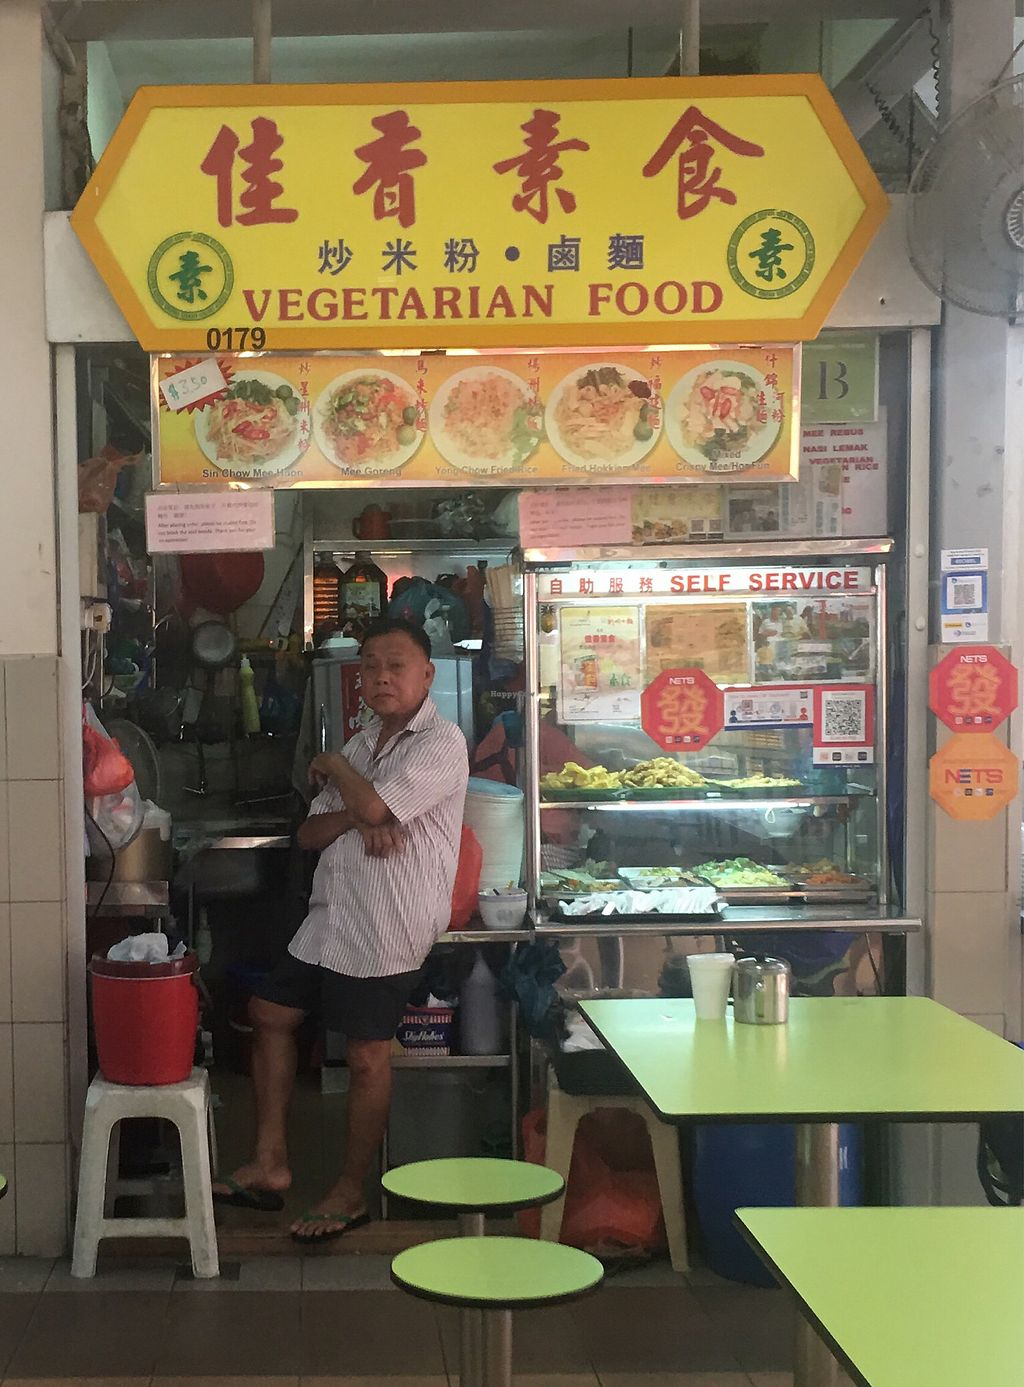 """Photo of Jia Xiang Vegetarian Food  by <a href=""""/members/profile/BernardKoh"""">BernardKoh</a> <br/>Located on the 2nd floor <br/> February 21, 2018  - <a href='/contact/abuse/image/50528/361949'>Report</a>"""